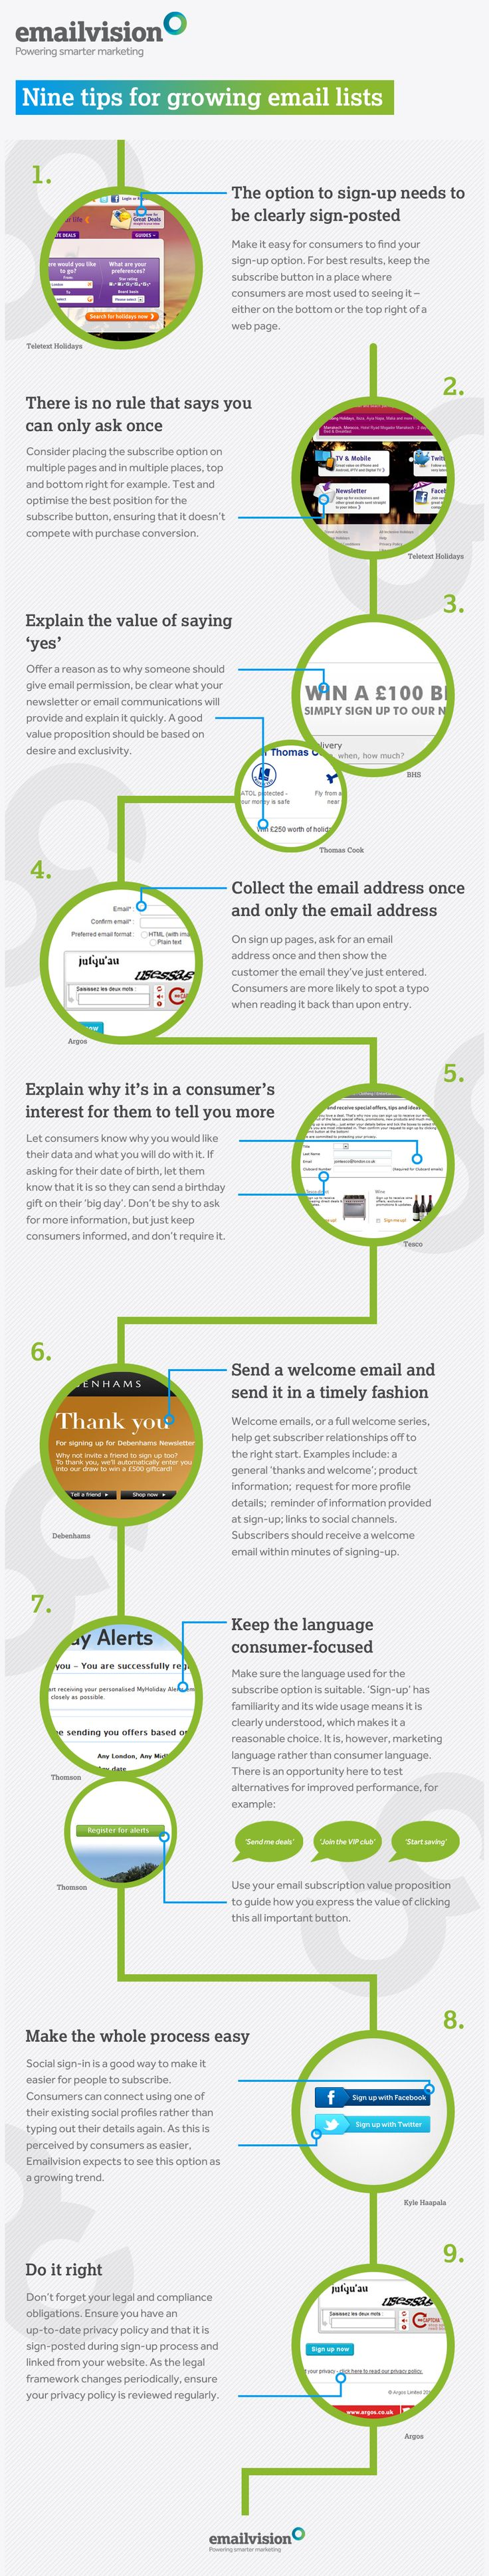 Nine tips for growing email lists